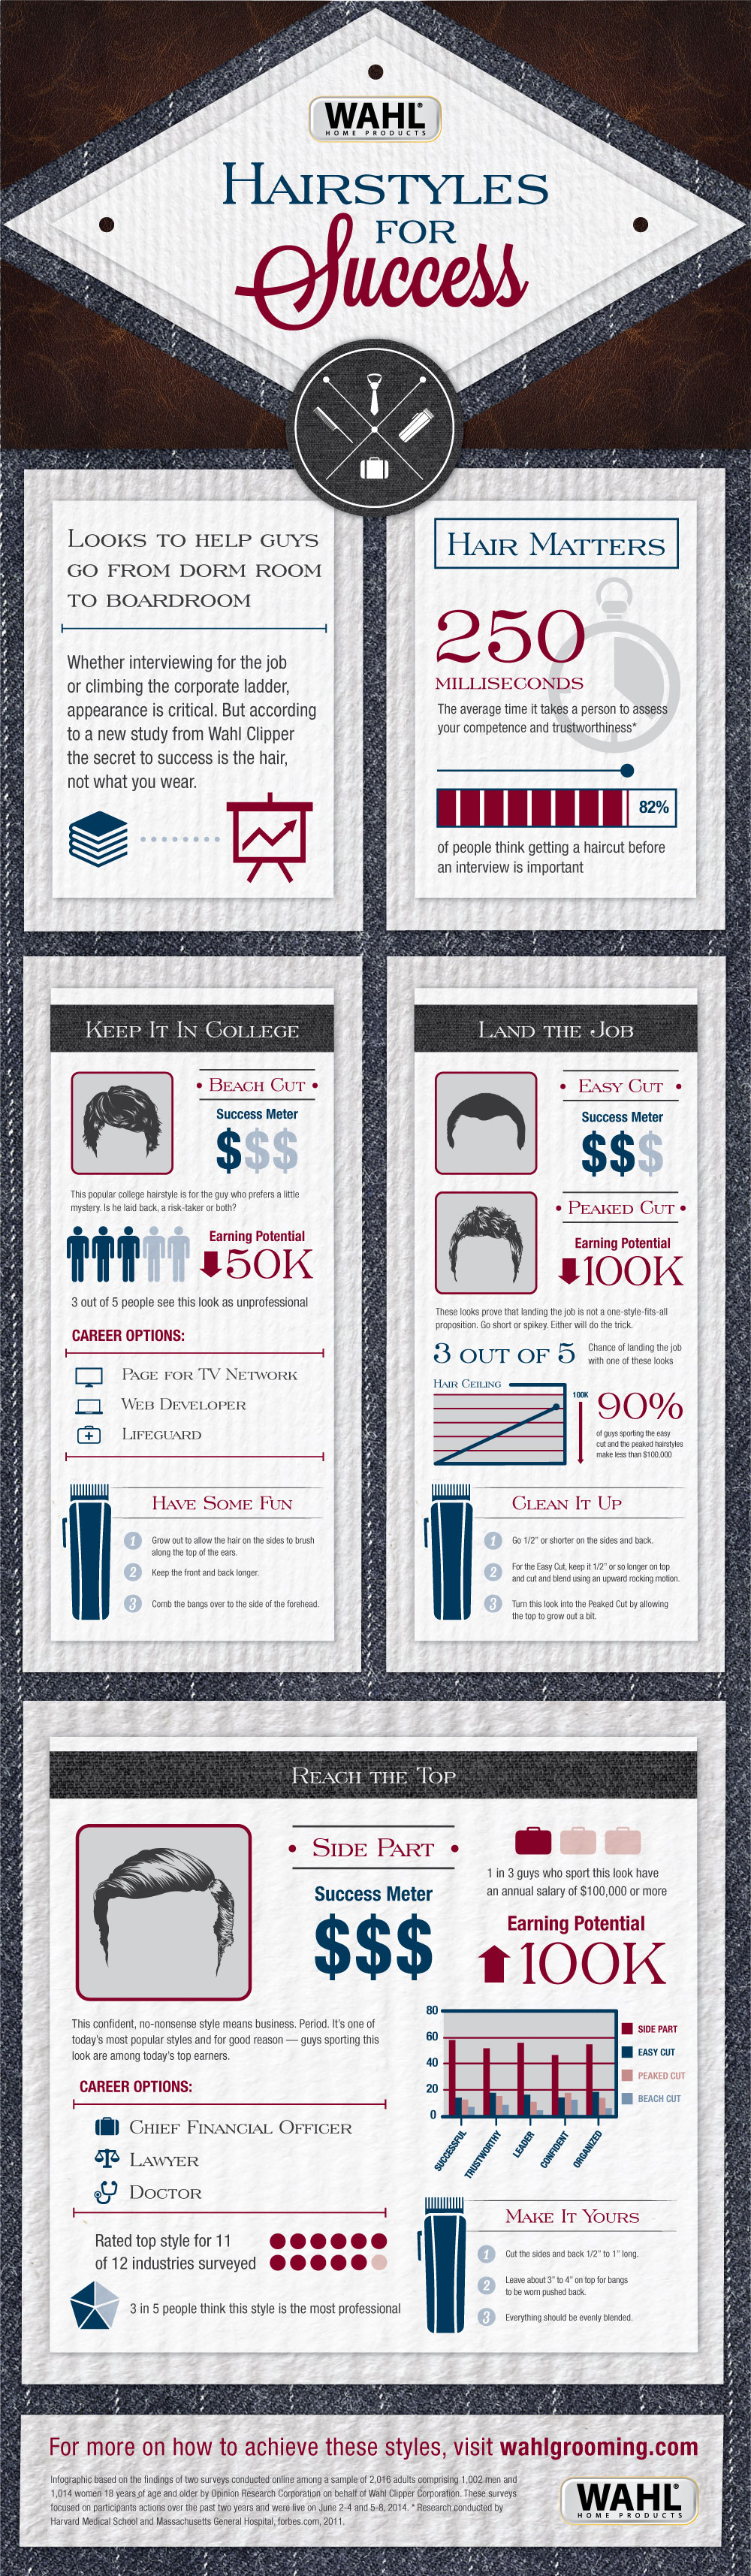 Hairstyles -for-Success-infographic-infographic-plaza